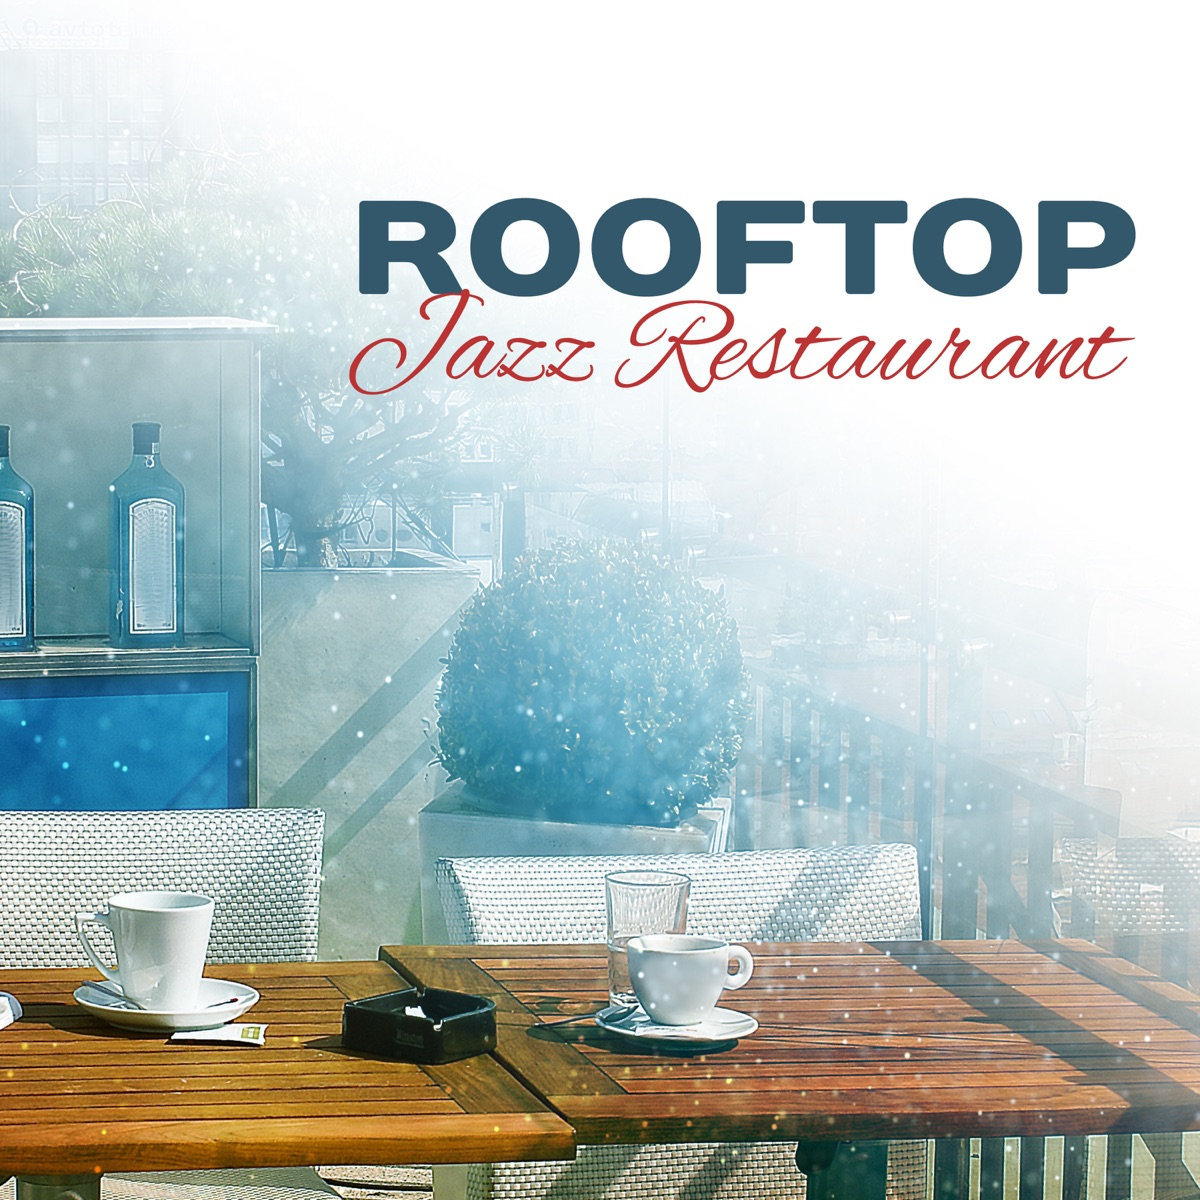 Rooftop Jazz Restaurant: Background Dinner Party Music, Cafe